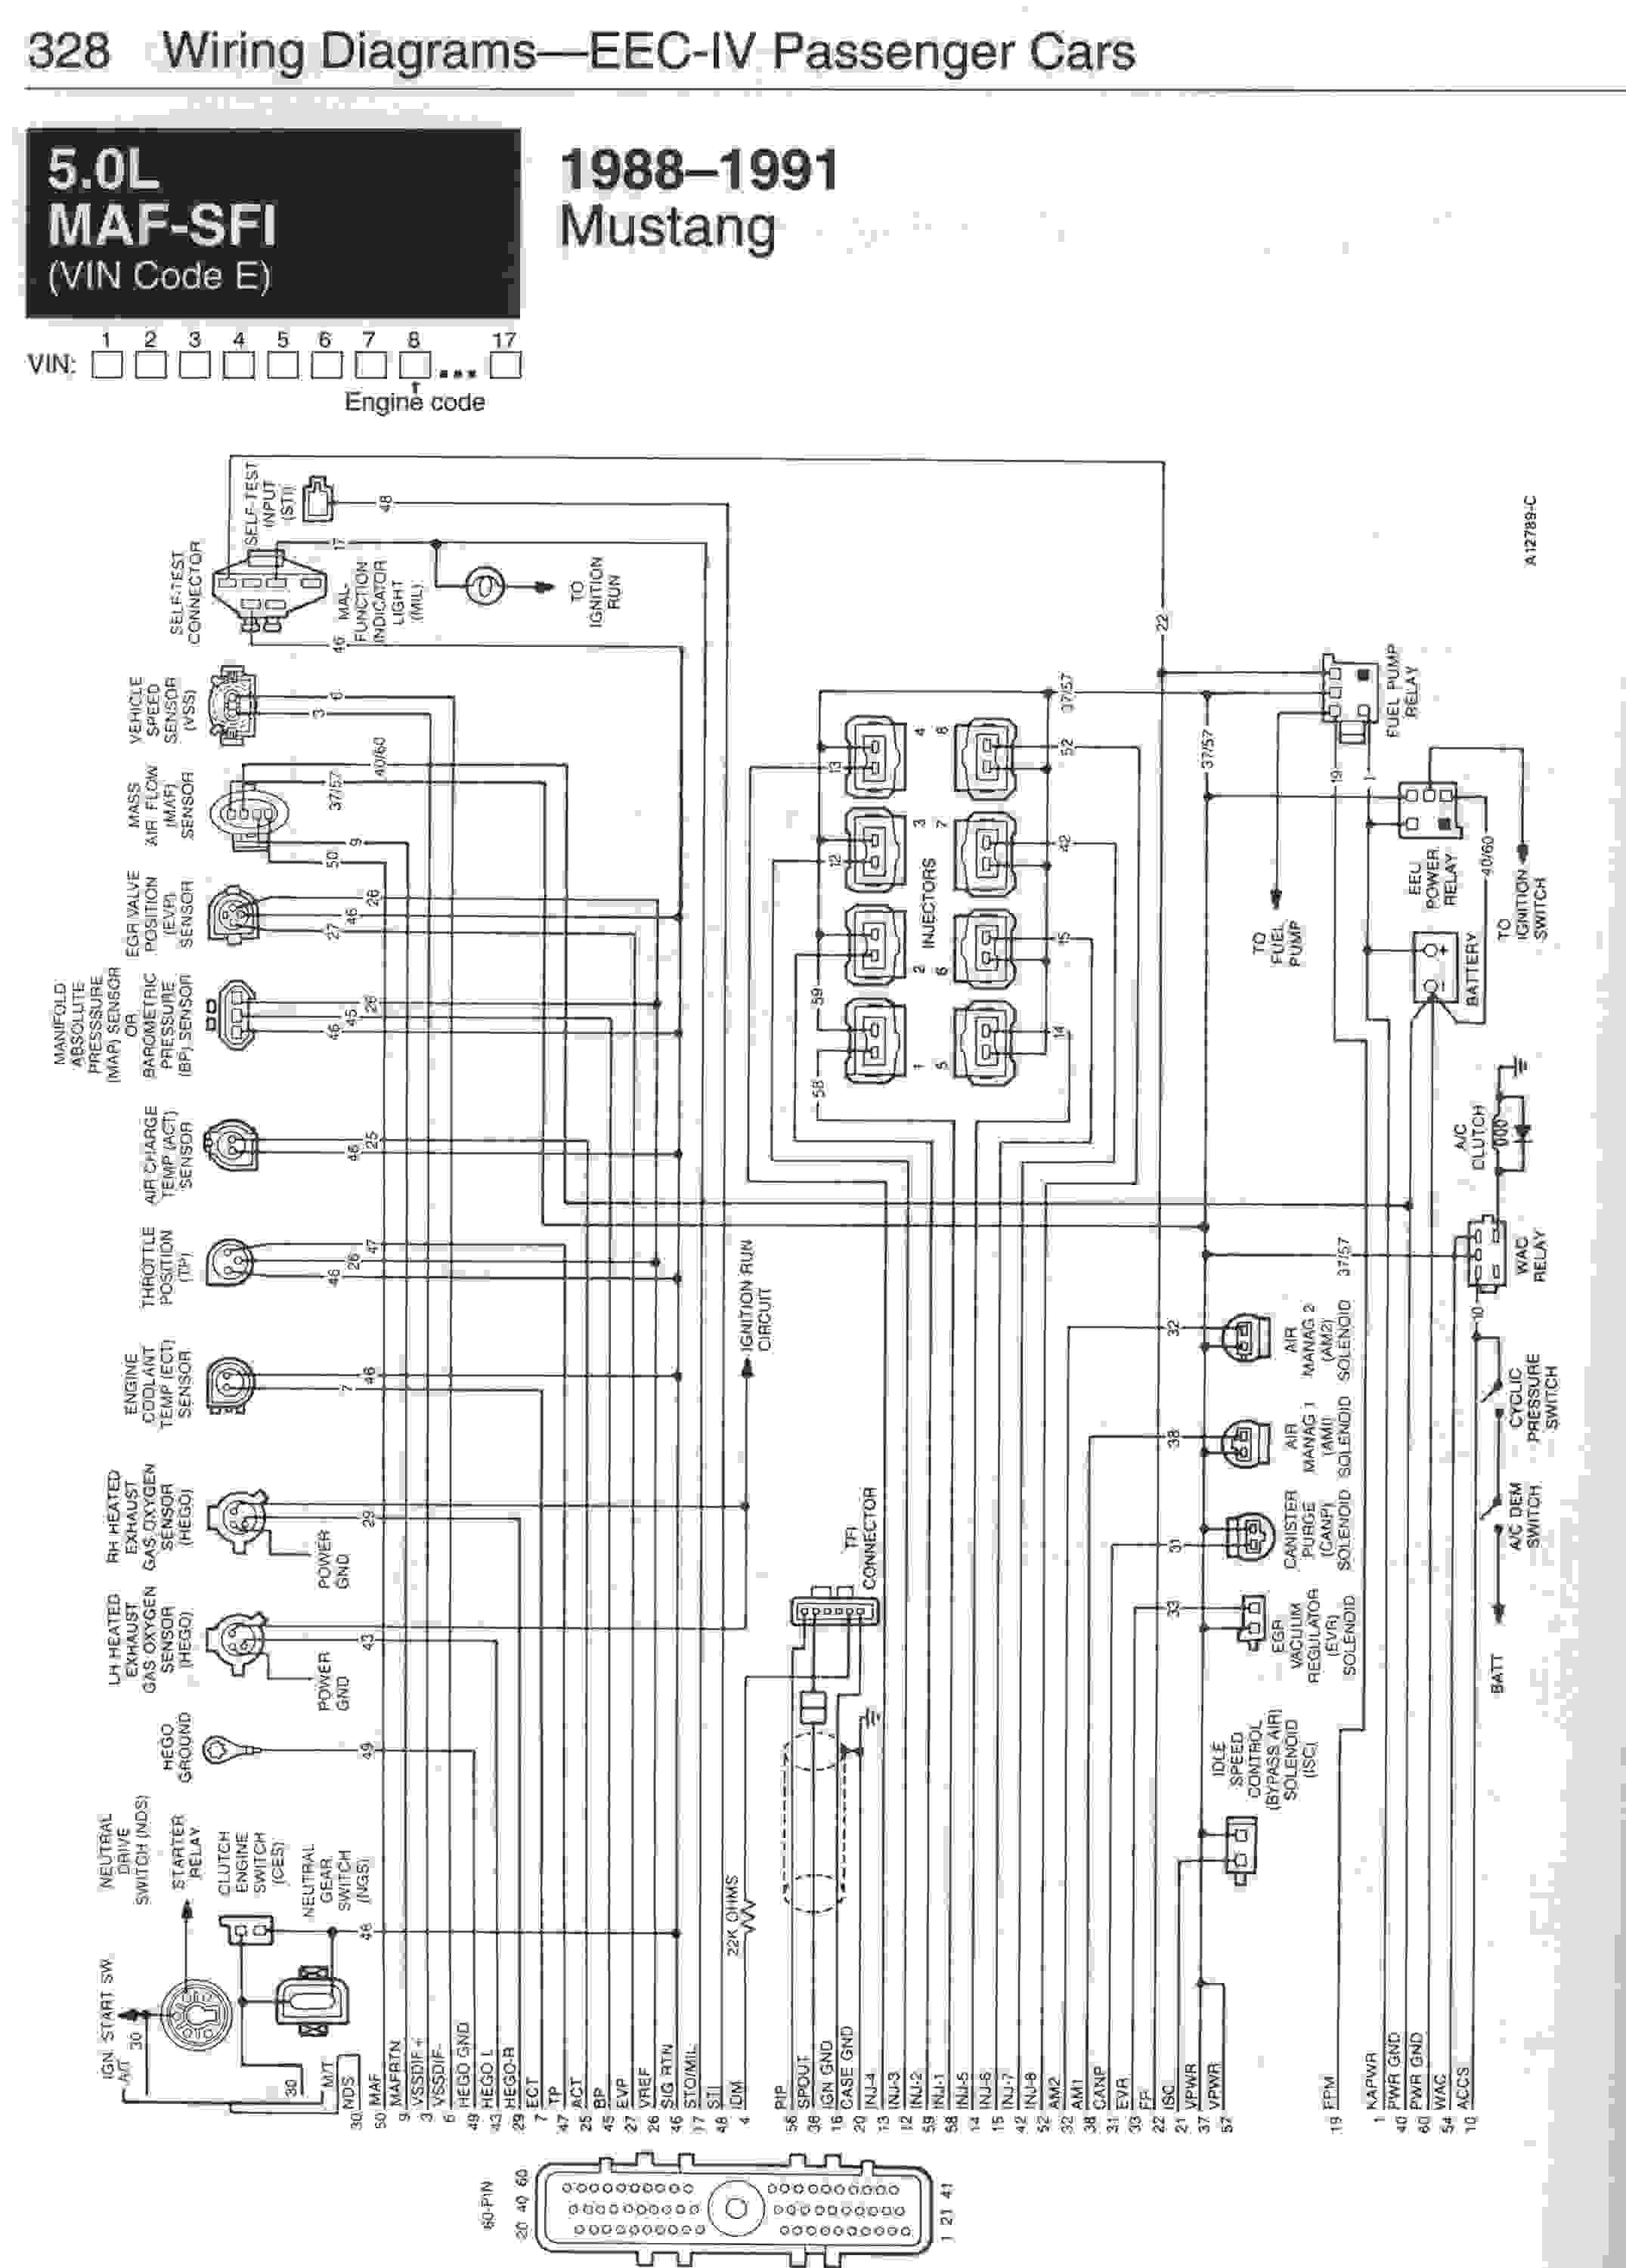 1980 Ford Pinto Wiring Diagram Circuit Schematic Ignition Engine Wire Diagrams 2012